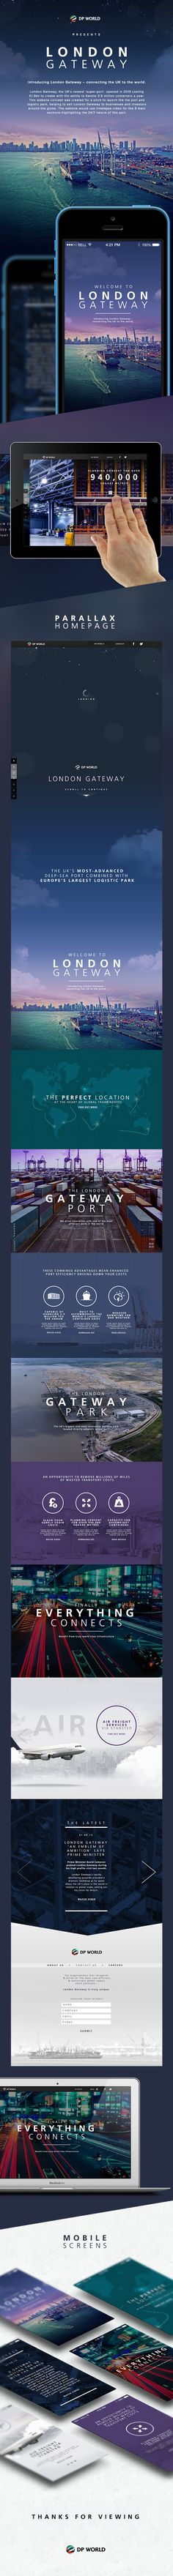 Cool Web Design on the Internet, London Gateway. #webdesign #webdevelopment #website @ http://www.pinterest.com/alfredchong/web-design/